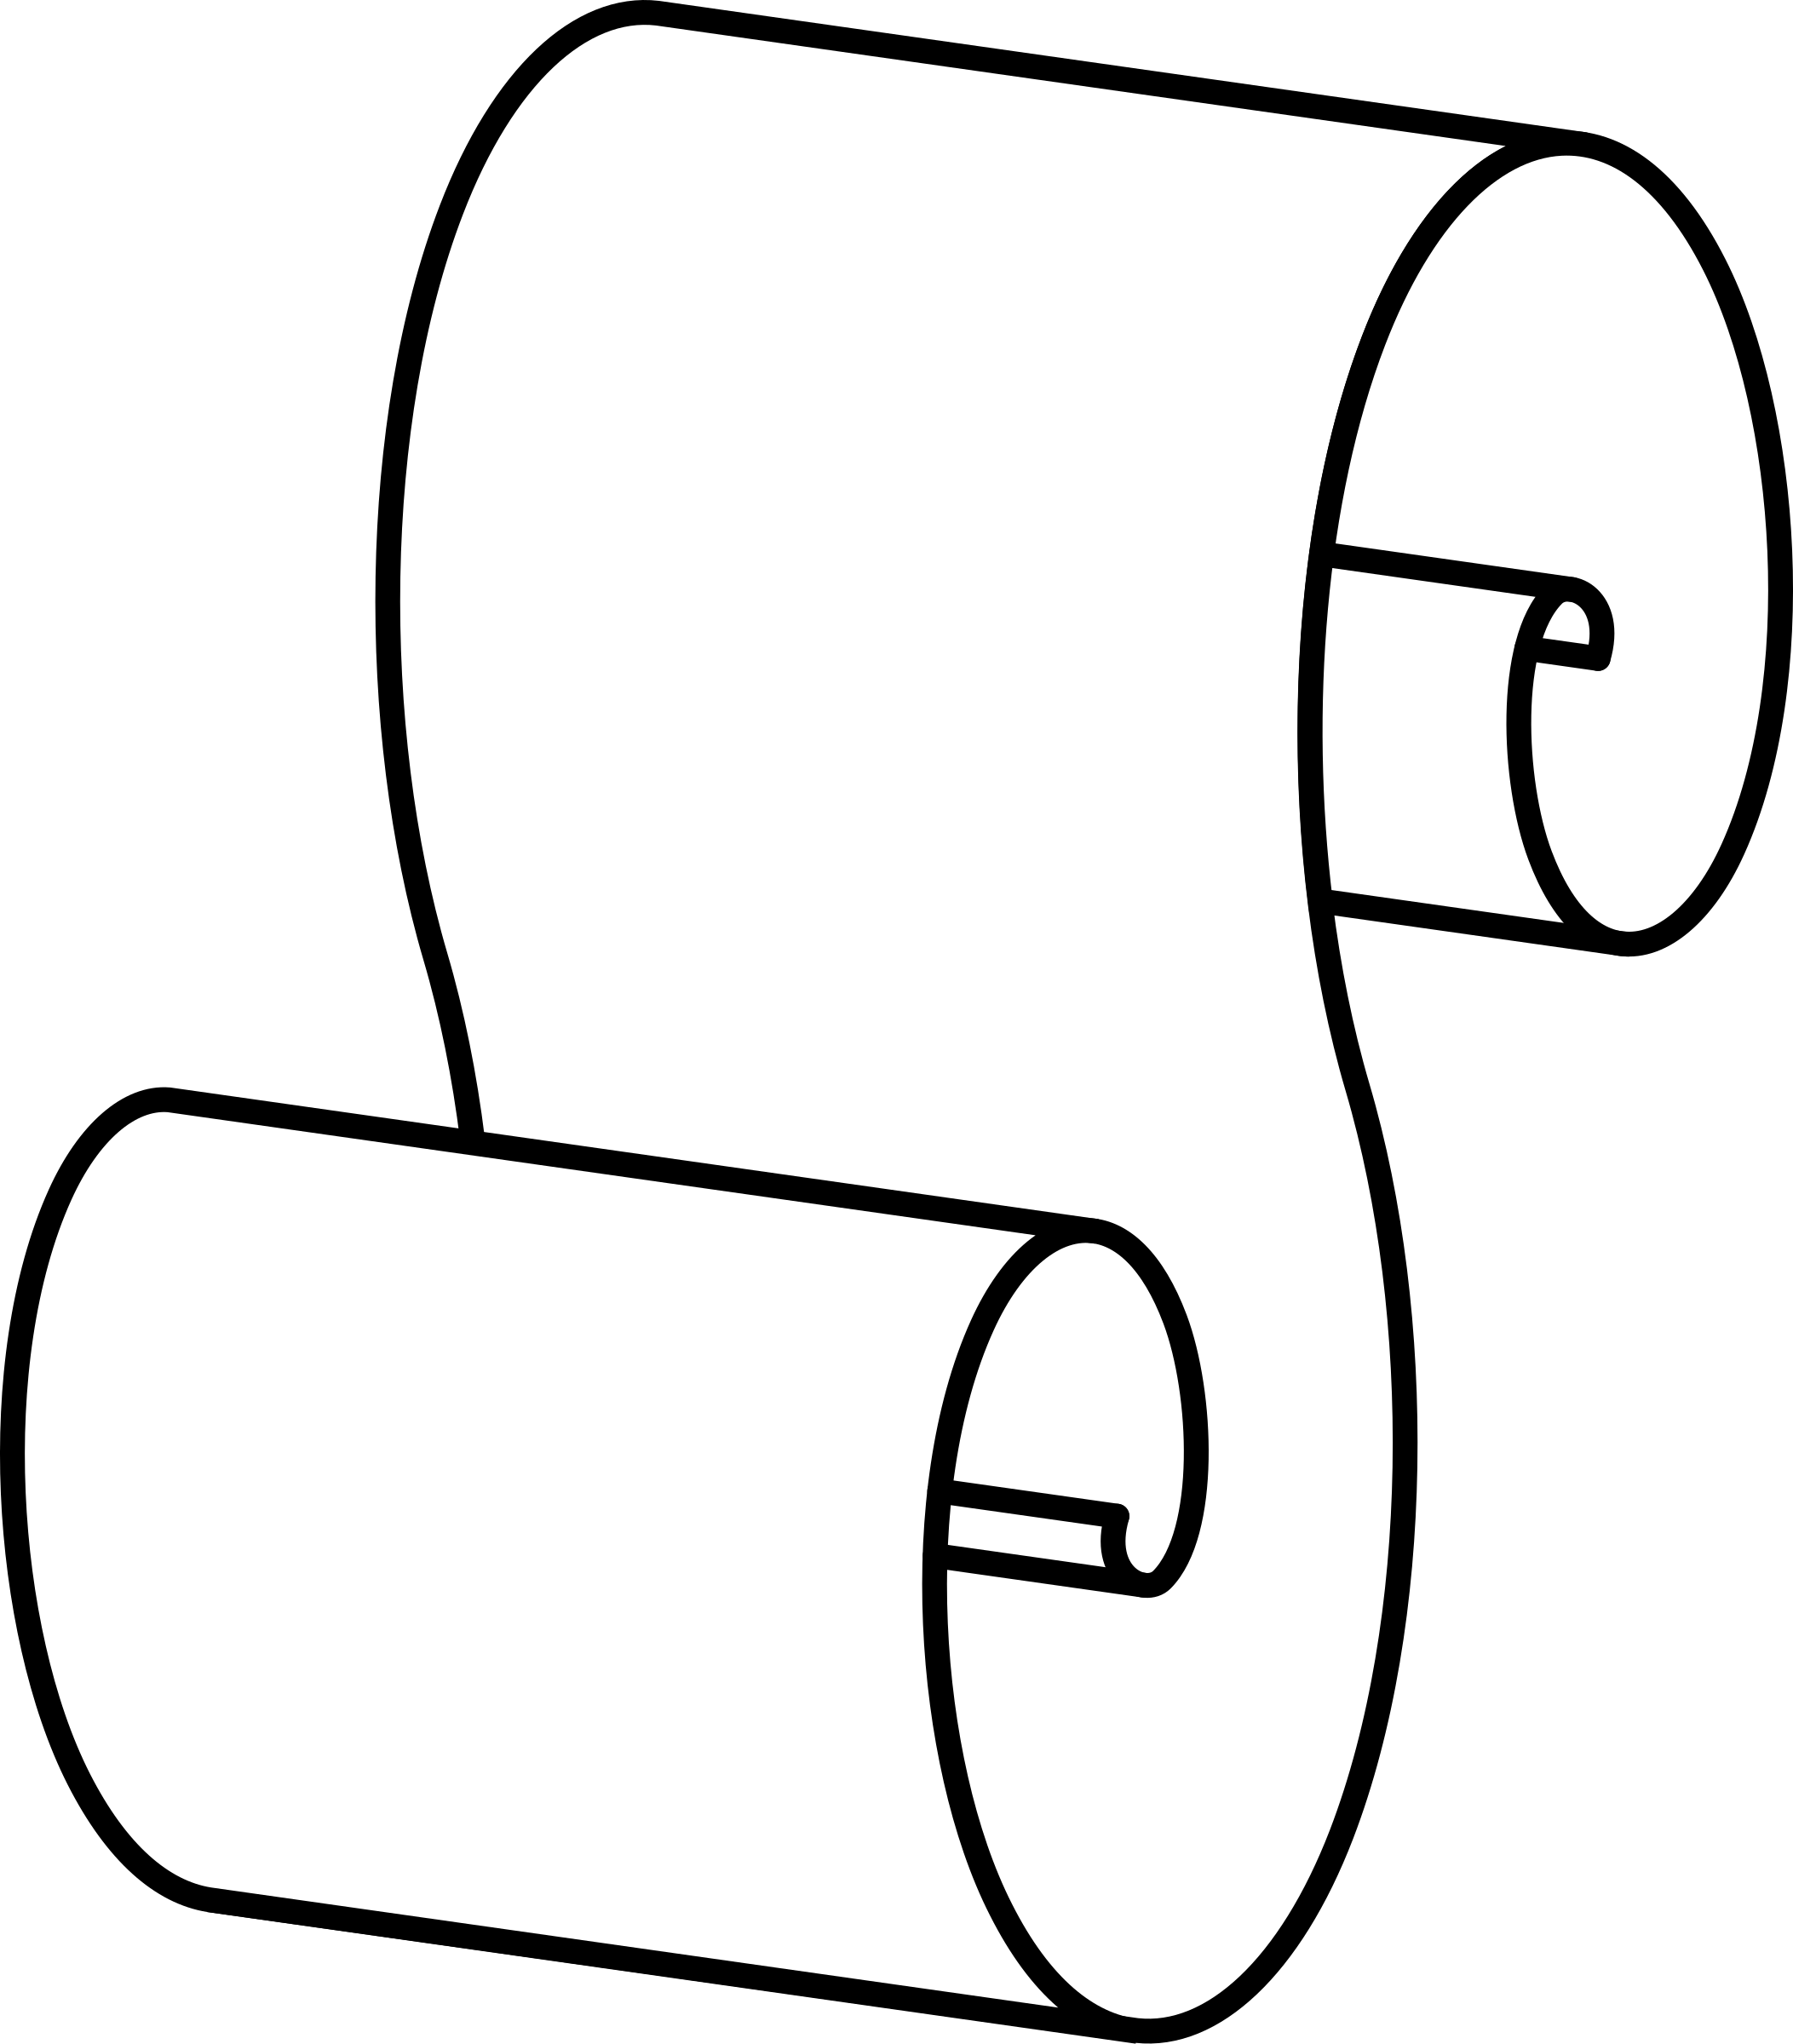 Scroll clip art black and white. Paper drawing at getdrawings